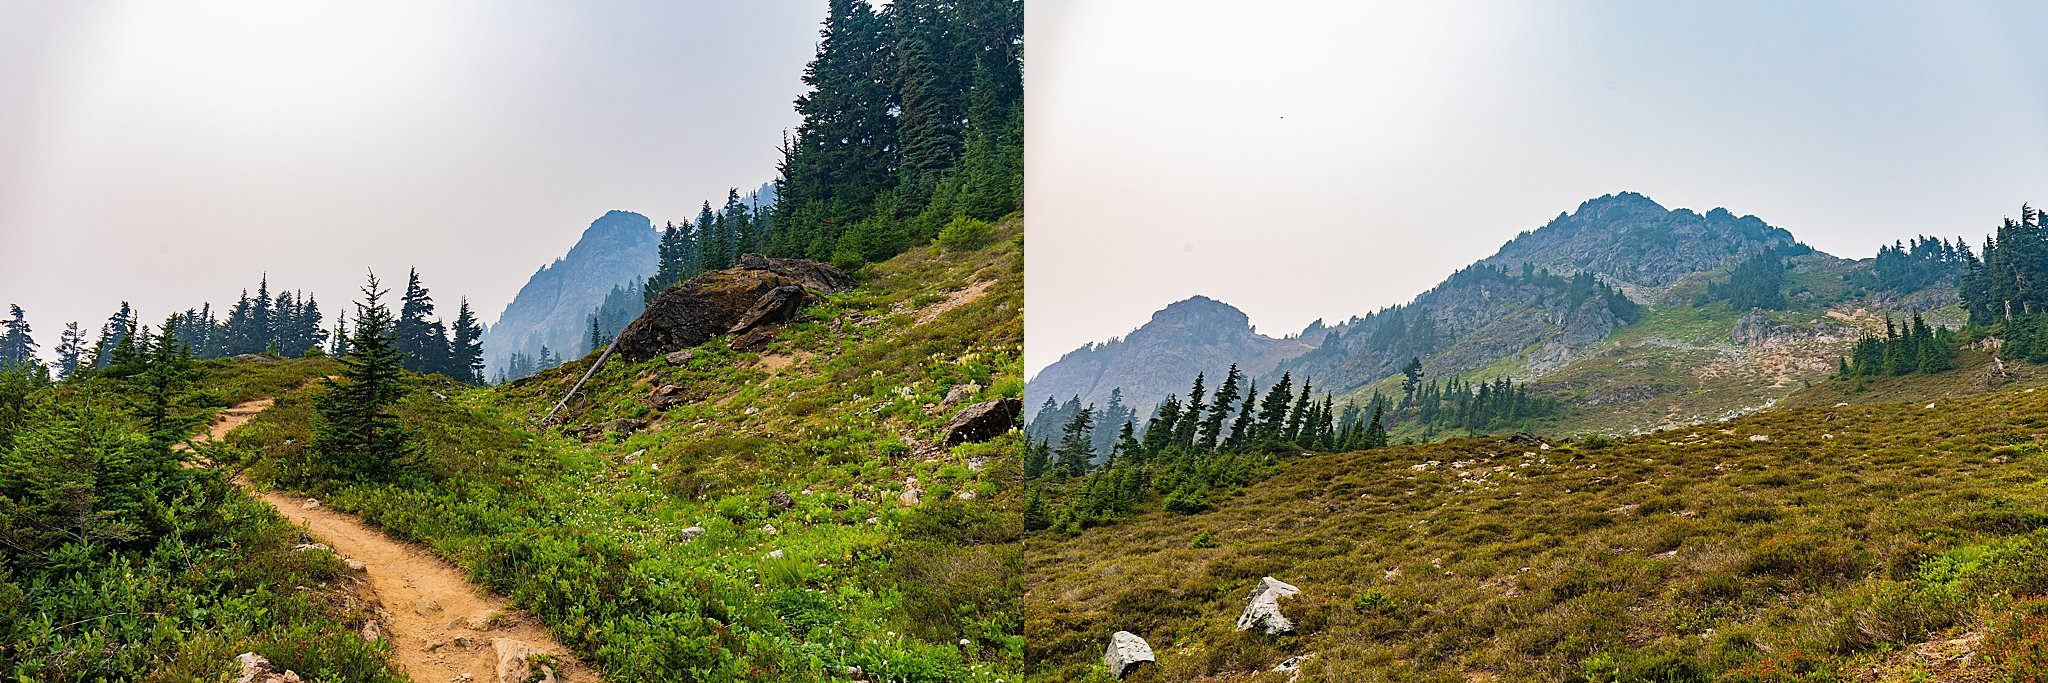 mount baker wilderness, mount baker, winchester mountain, winchester lookout, hike, 52 hike challenge, wildfire, dog friendly hike, washington, twin lakes trailhead